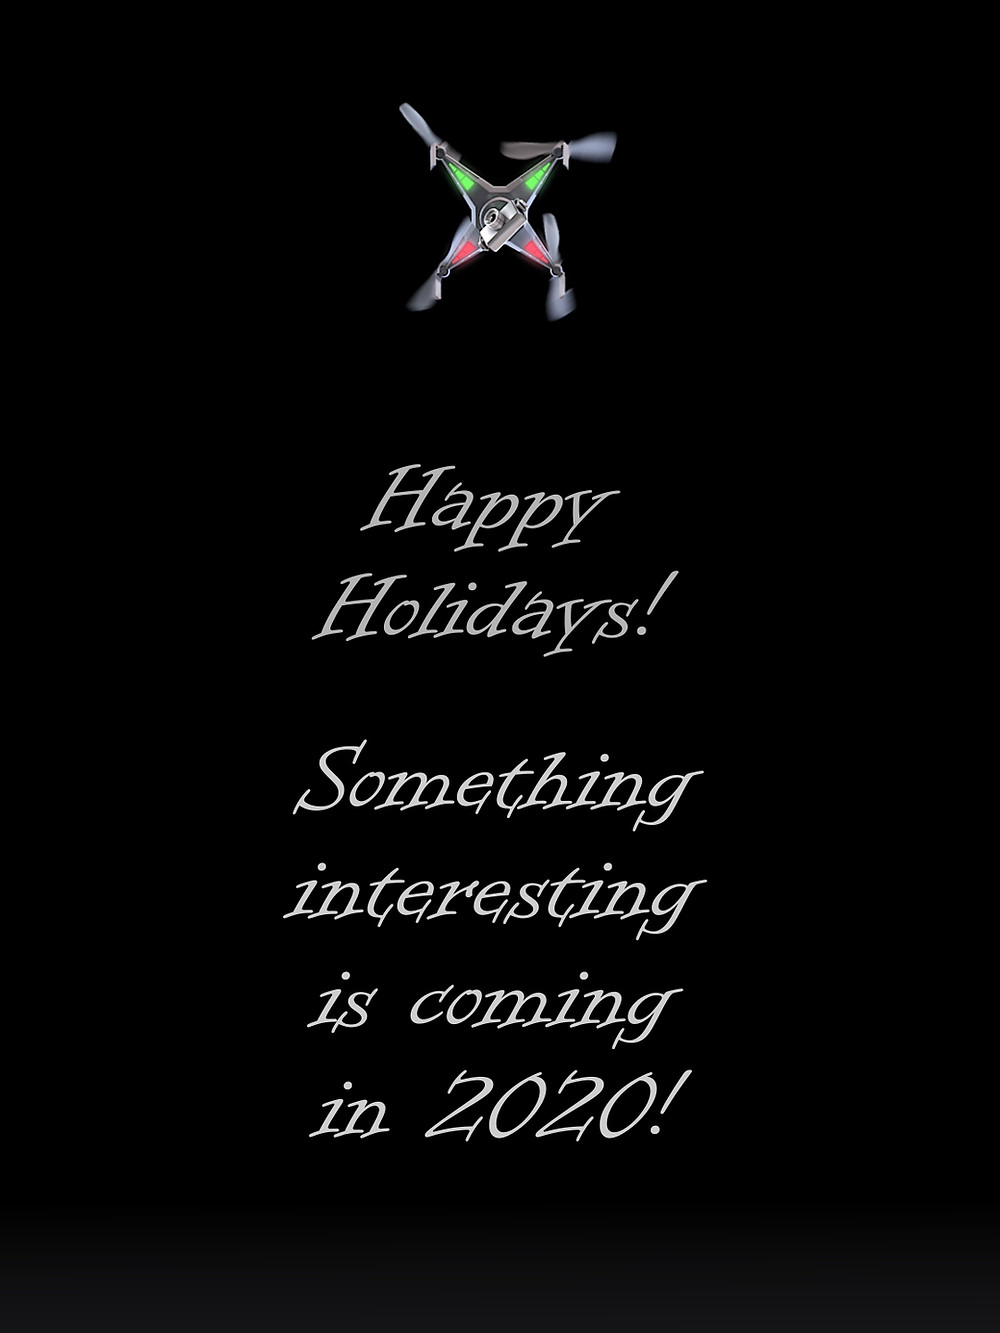 Happy holydays and happy New Year 2020